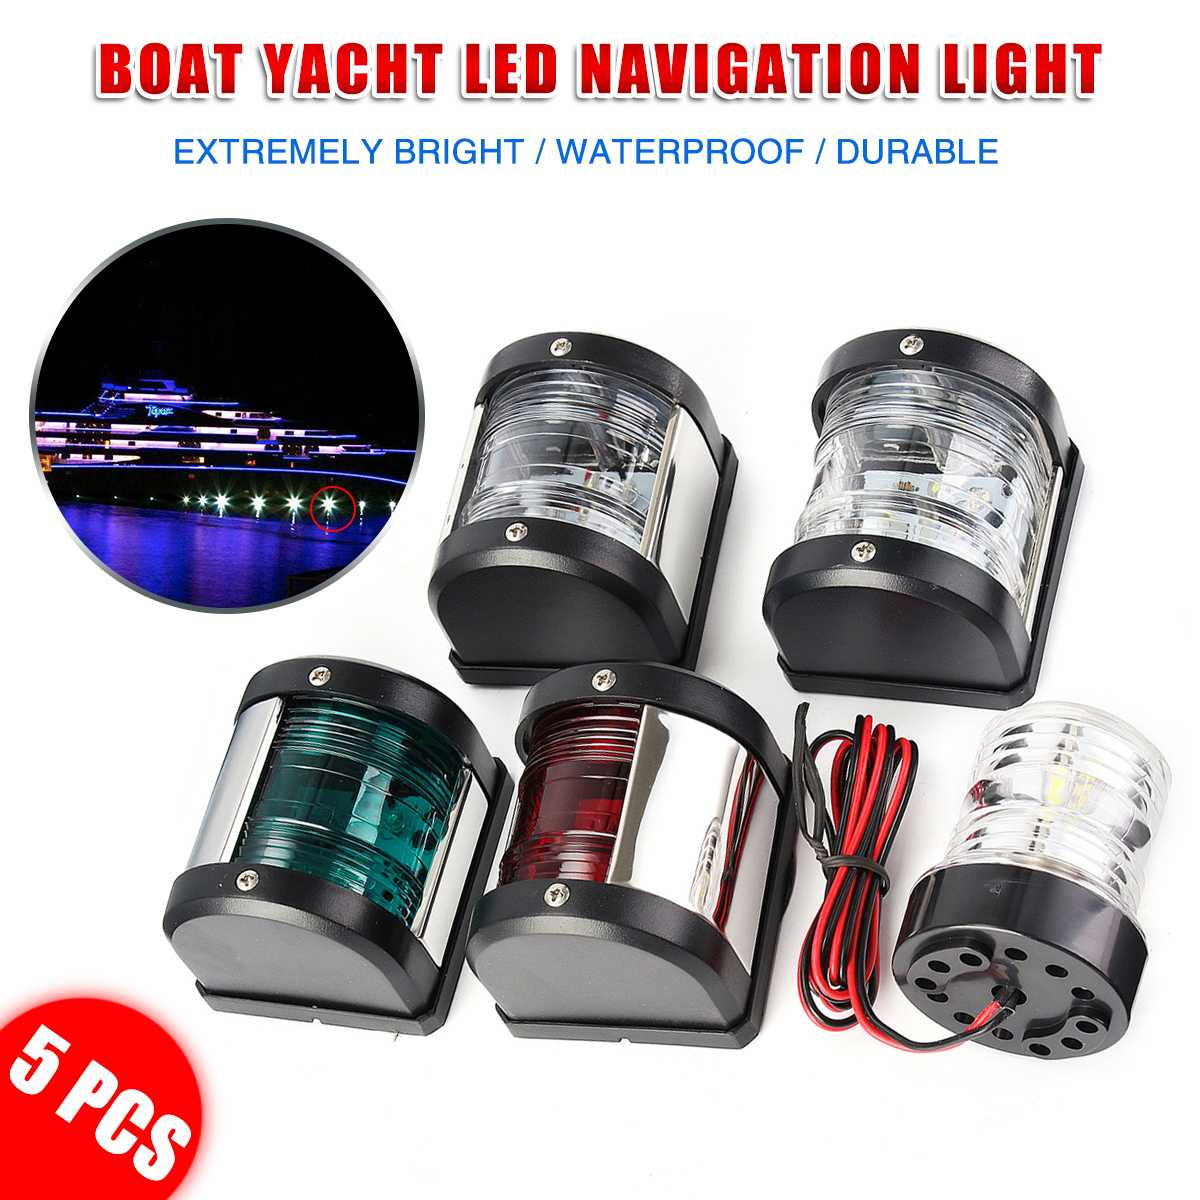 5Pcs 12V LED 360 Degree All Round Light Marine Boat Yacht Masthead/Stern/Starboard/Port Navigation Lights Waterproof Turn Lights